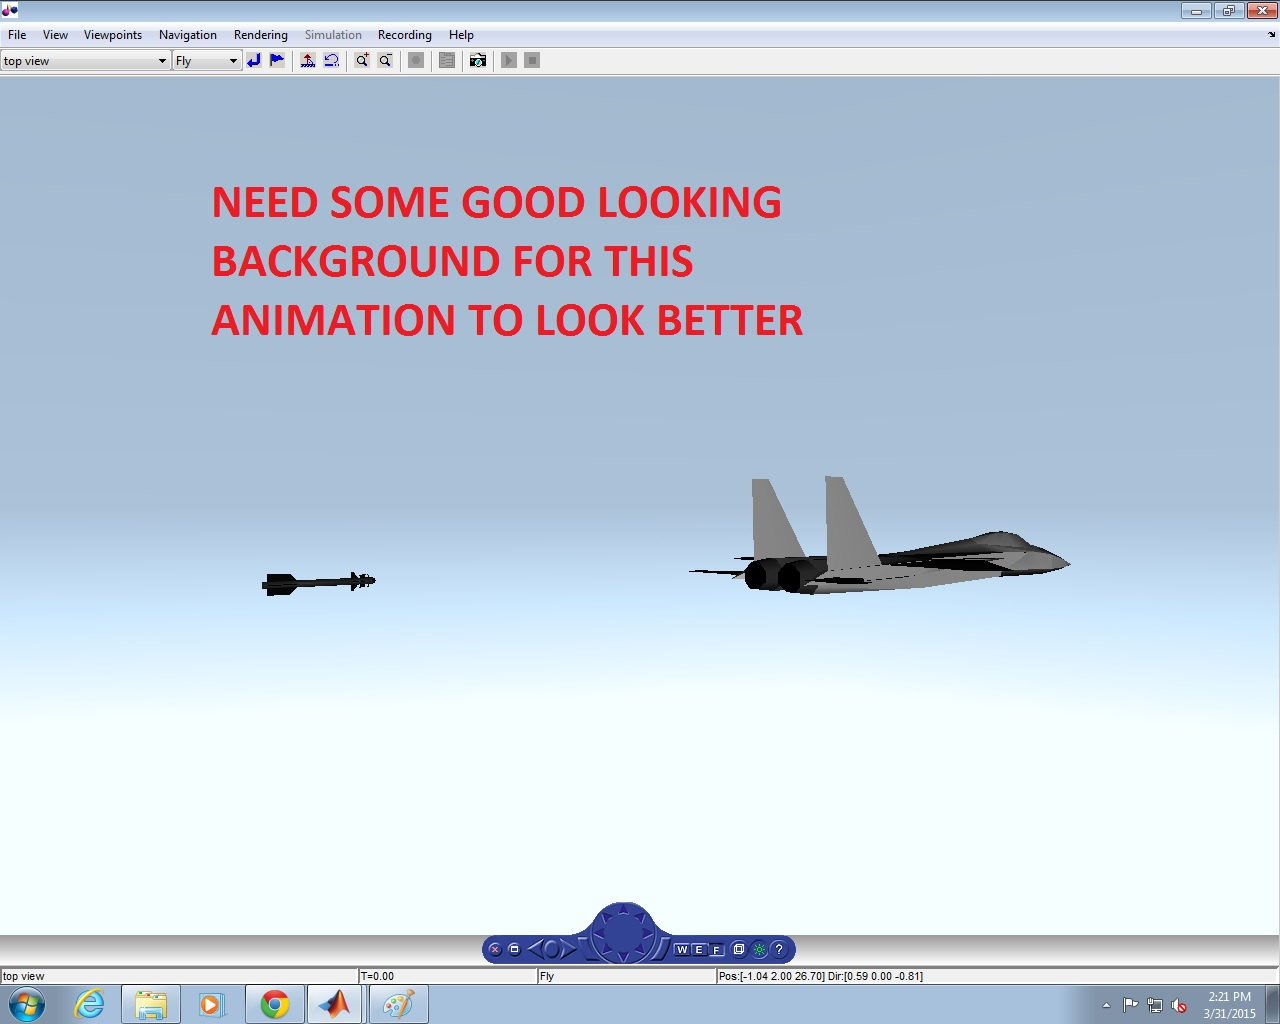 Need 3D mesh background in VRML format for usage in MATLAB